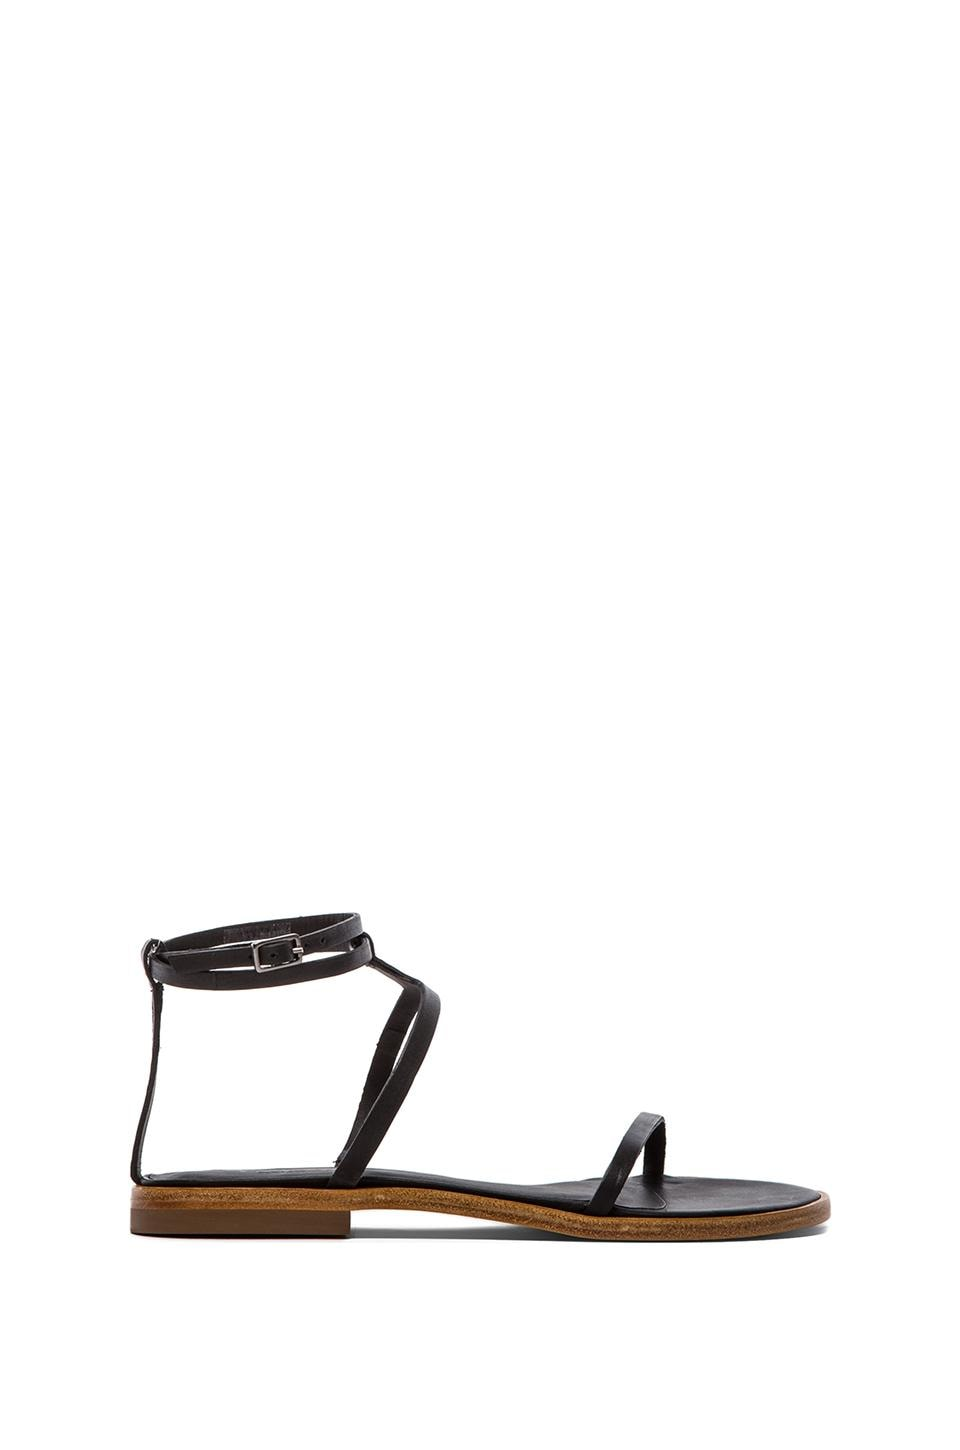 Tibi Colby Sandal in Black